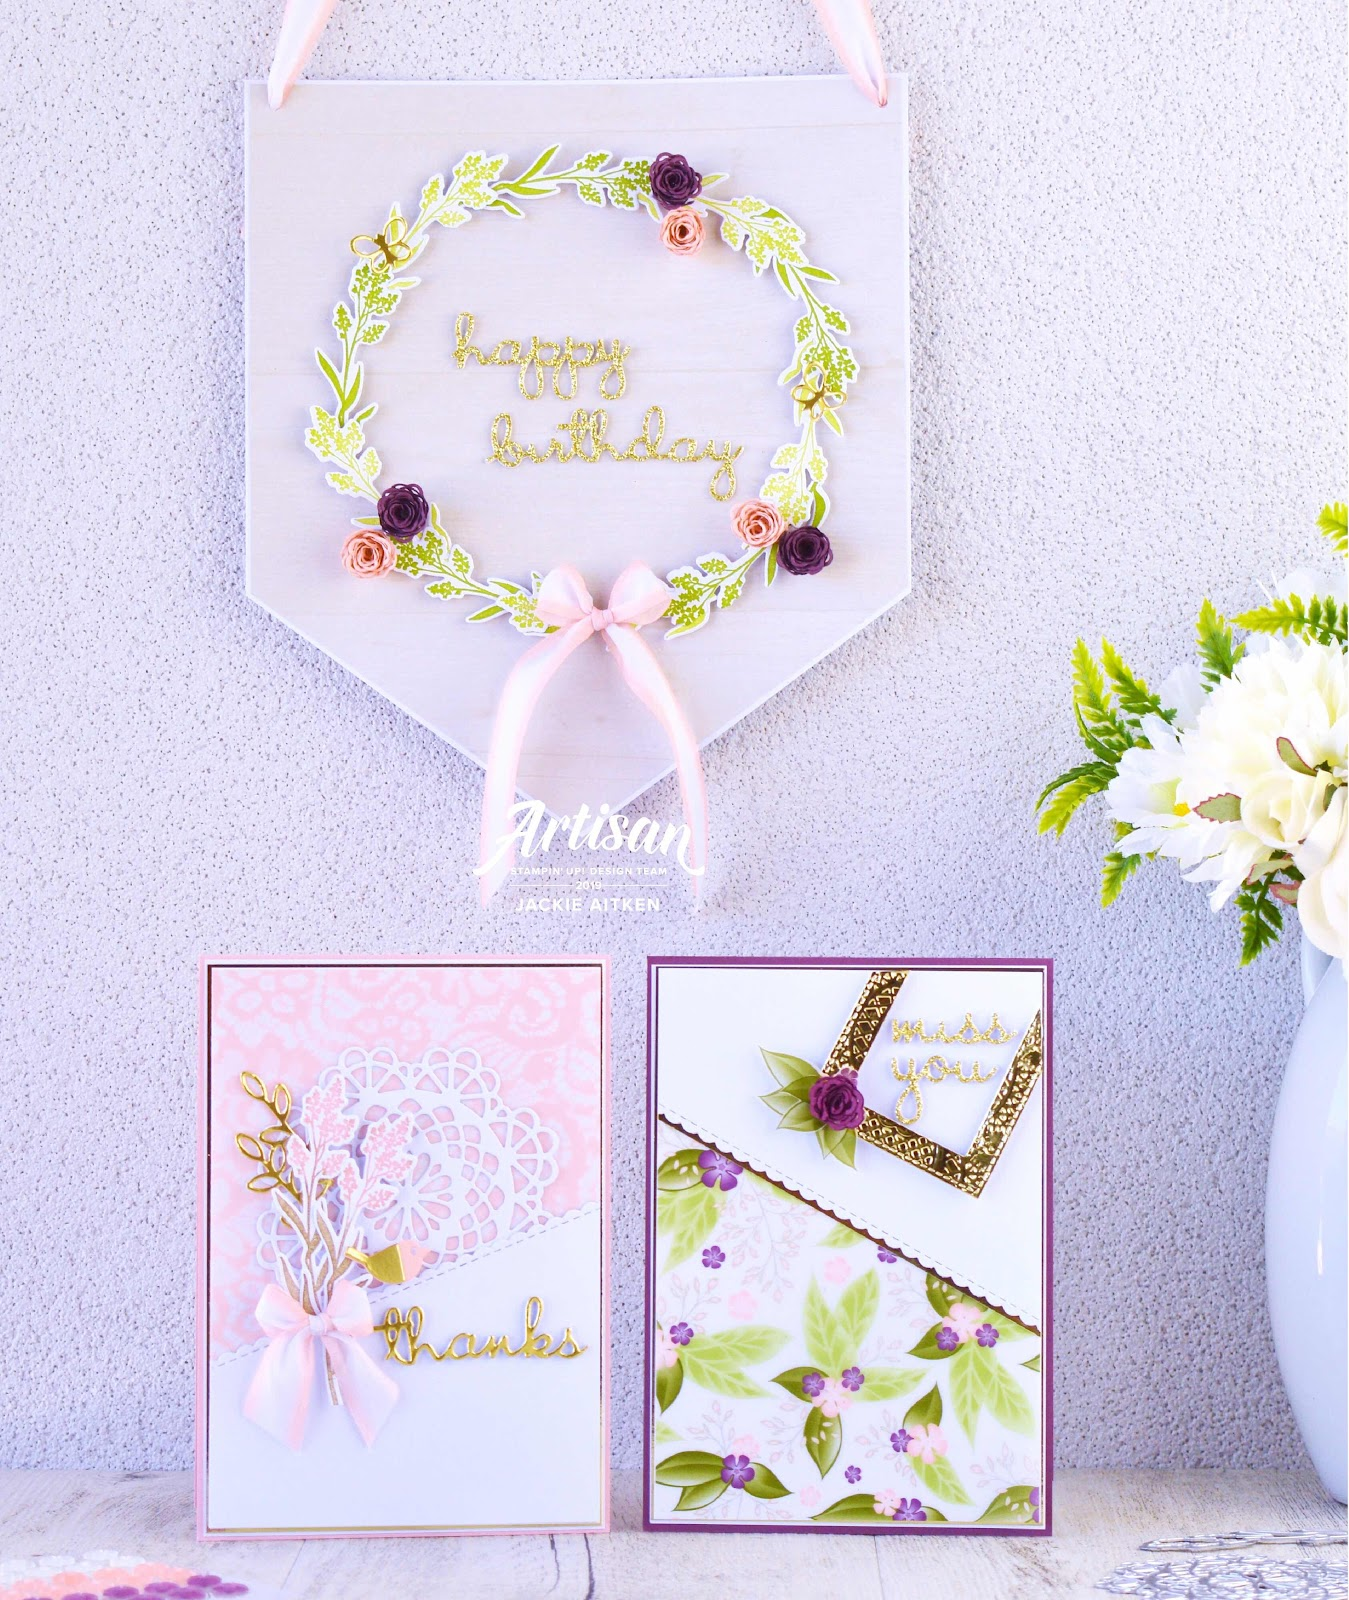 Dear Doily, Jaxx Crafty Creations, Stampin' Up!, Well Said, Well Written Framelits, Lace Dynamic TI Embossing Folder, Floral, cards and banner, Romance DSP, Artisan Design Team 2019, Artisan Blog Hop,